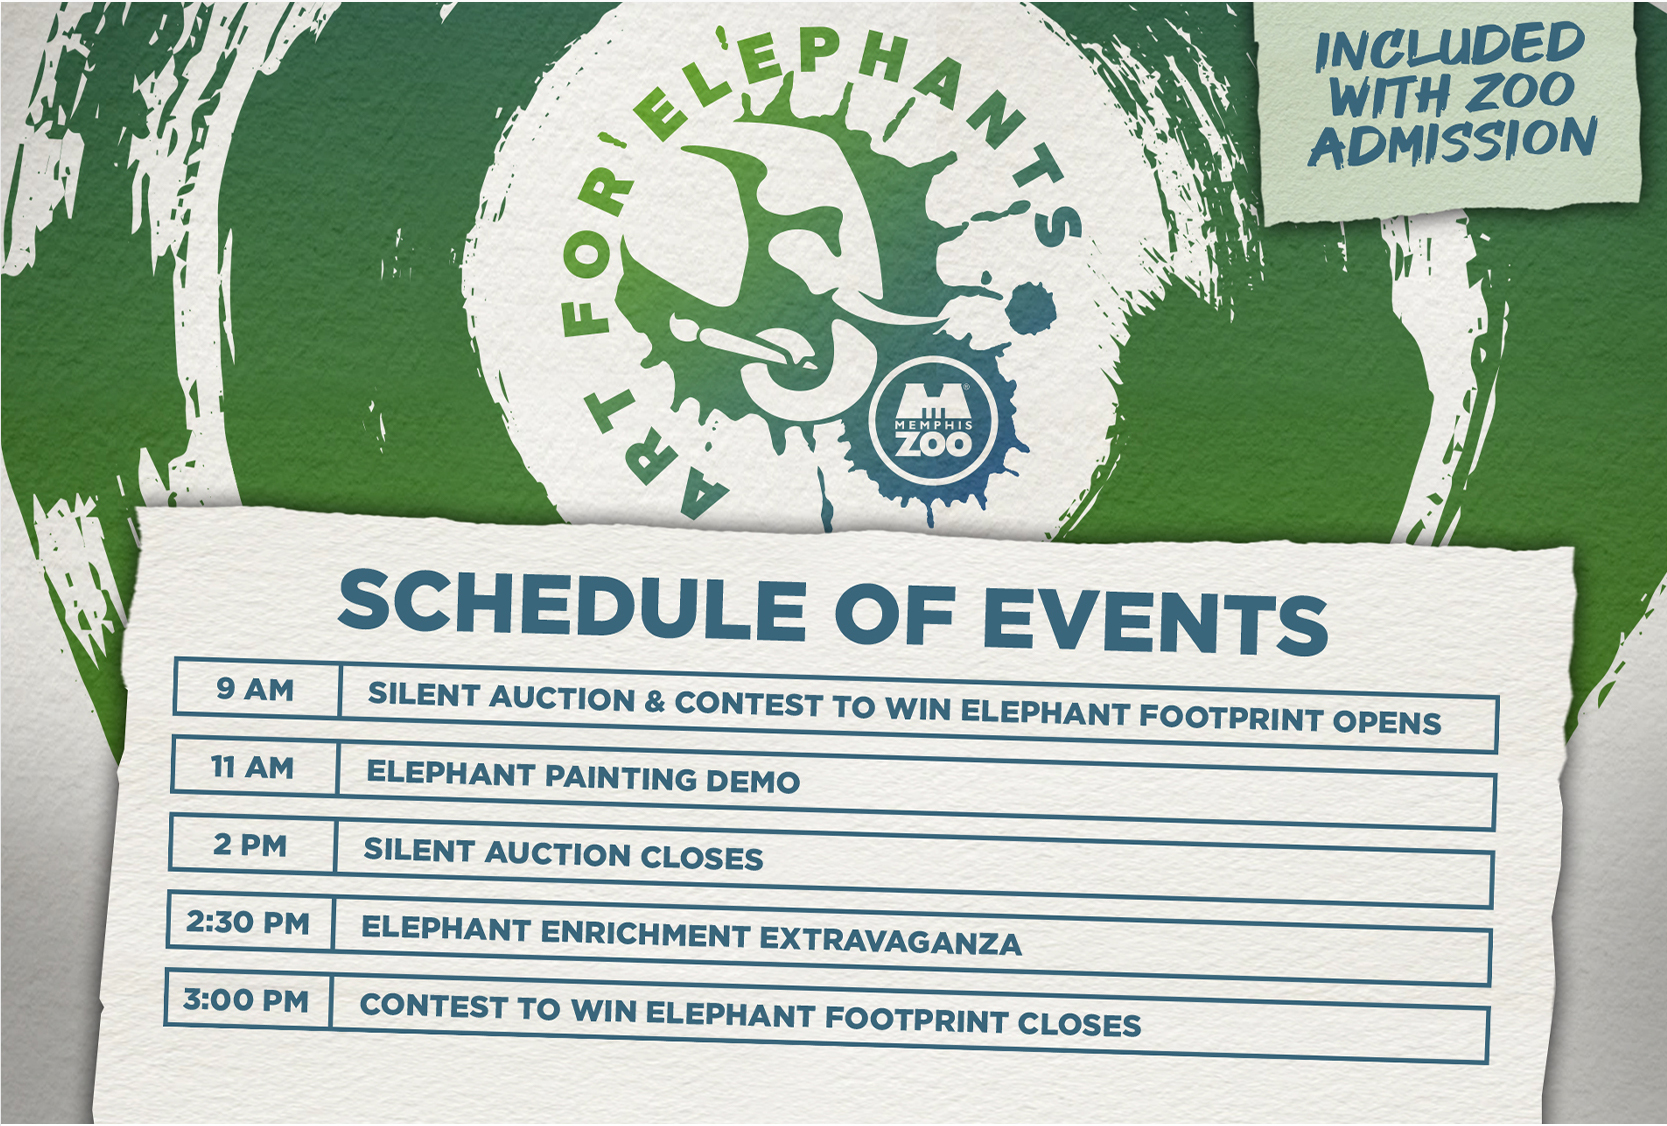 Help support elephants in the wild by attending Art for Elephants at Memphis Zoo included with Zoo admission. Proceeds from this event go to Elephants for Africa, a charity committed to protecting the endangered African elephant through research and education.